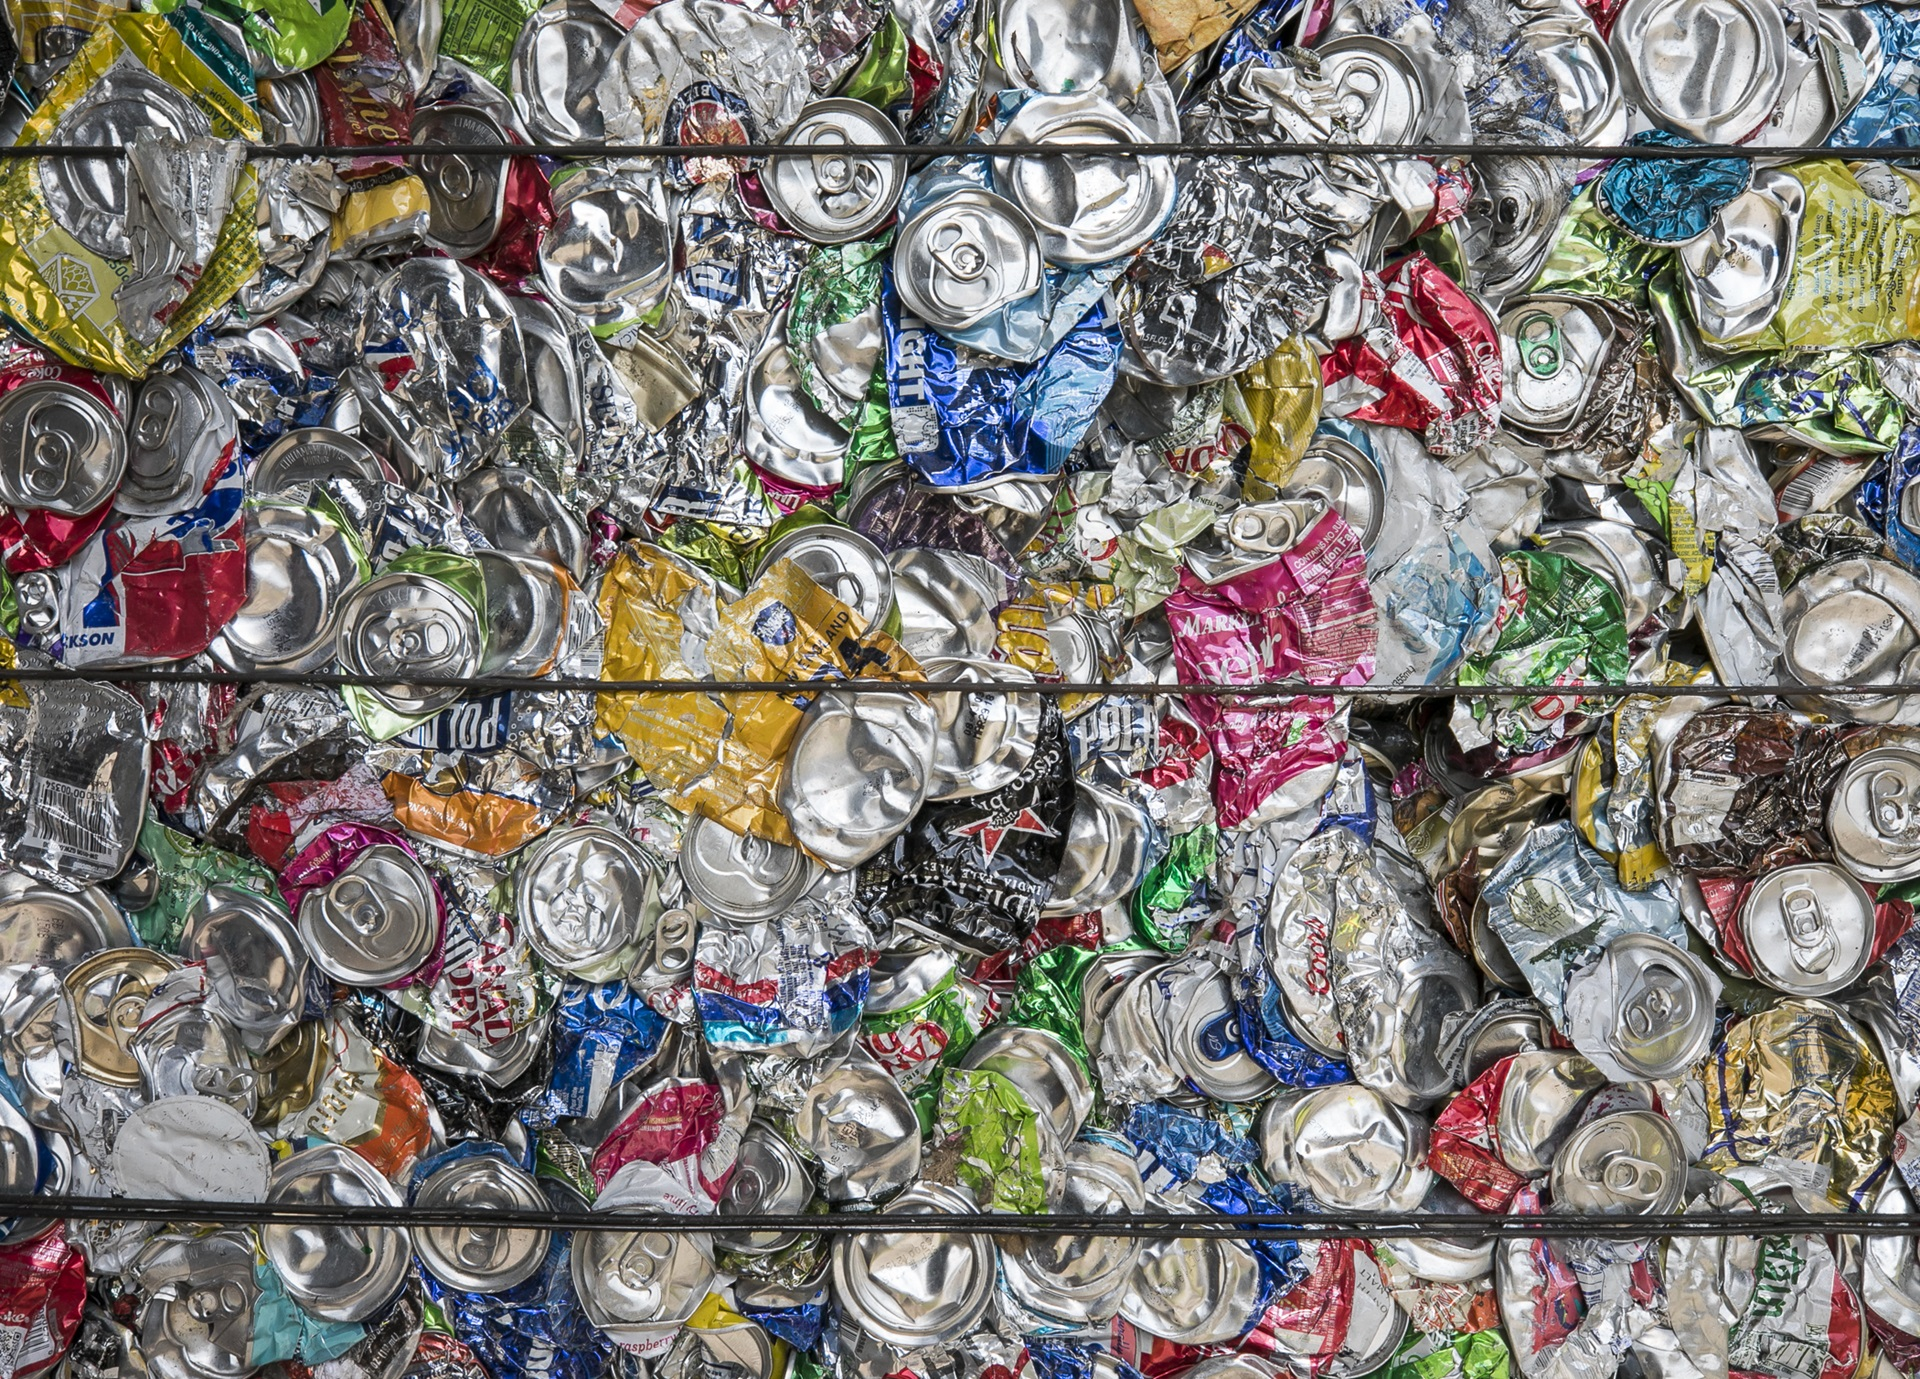 Bundles of Compressed Aluminum Cans for Recycling